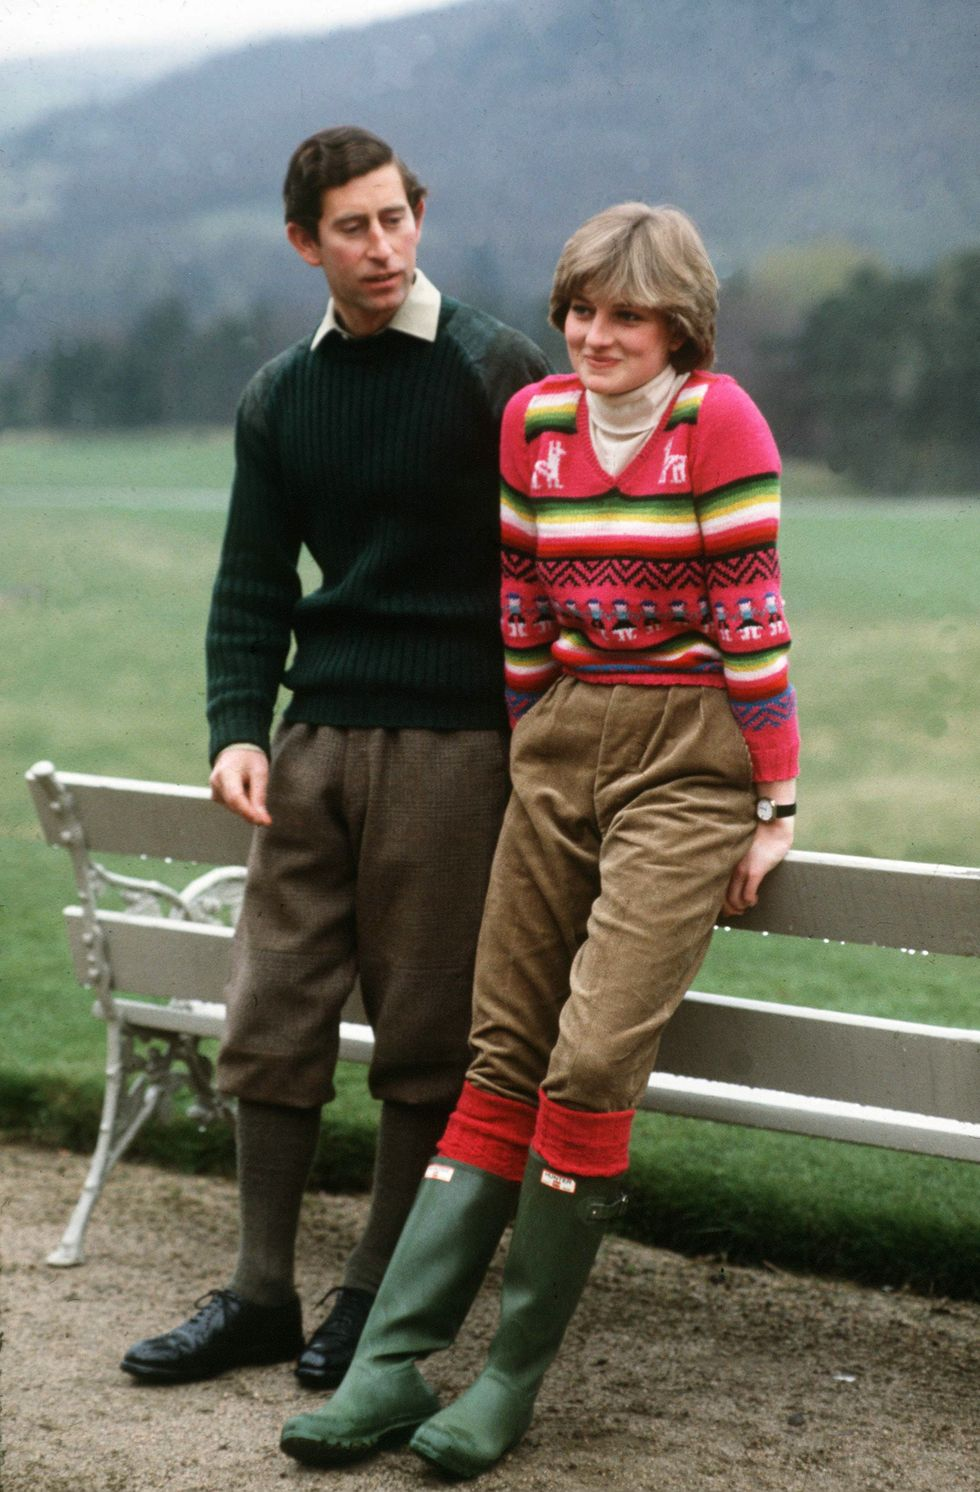 Princess Diana and Prince Charles at Balmoral castle